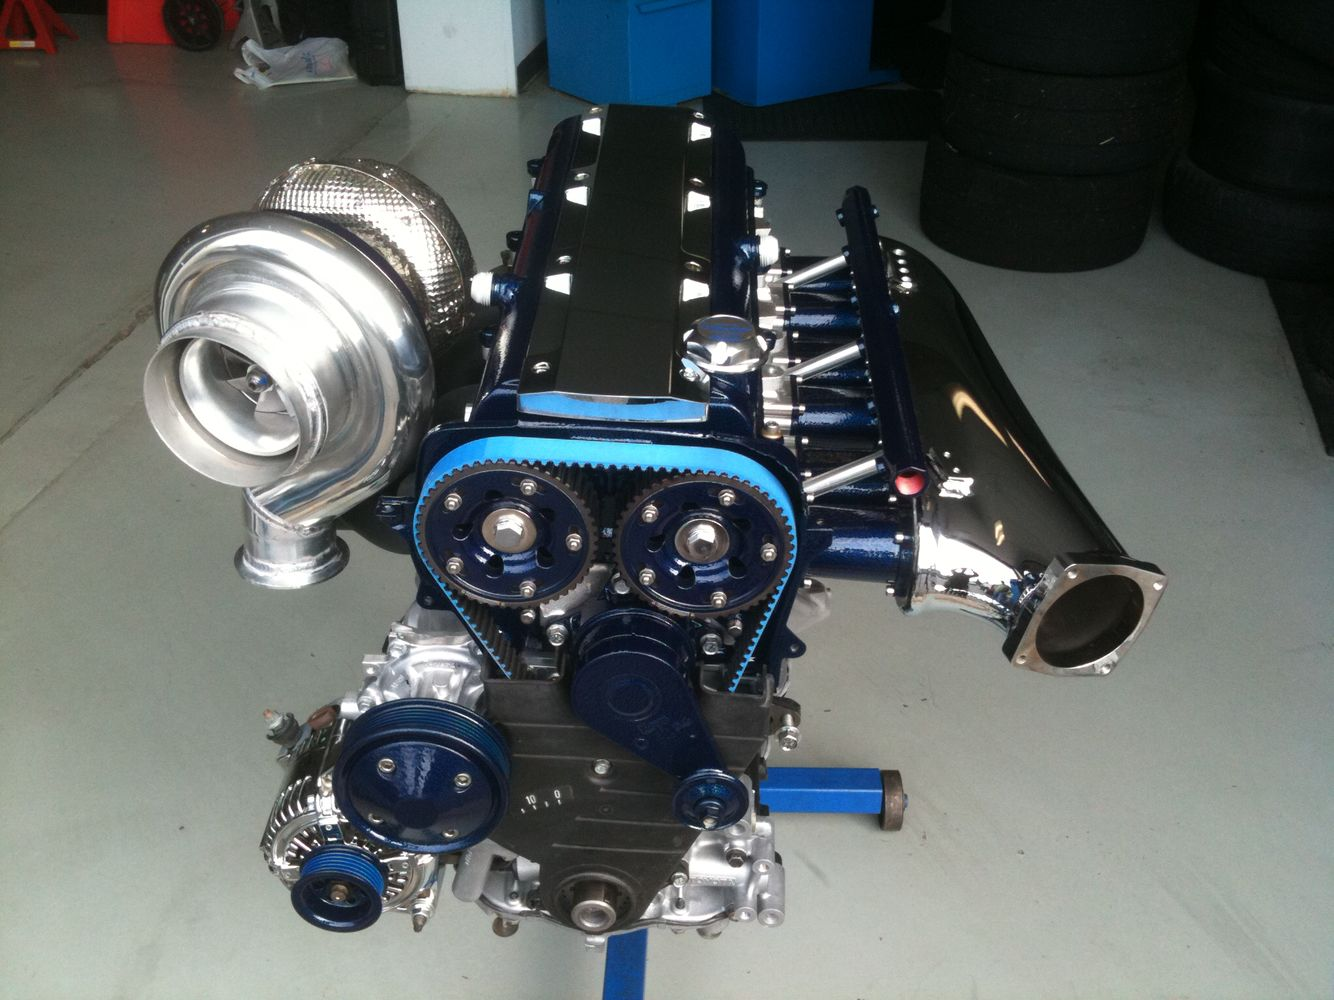 Incredible Toyota Supra Turbo 2Jz Engine I Built Automotive 2Jz Engine Wiring Digital Resources Operpmognl